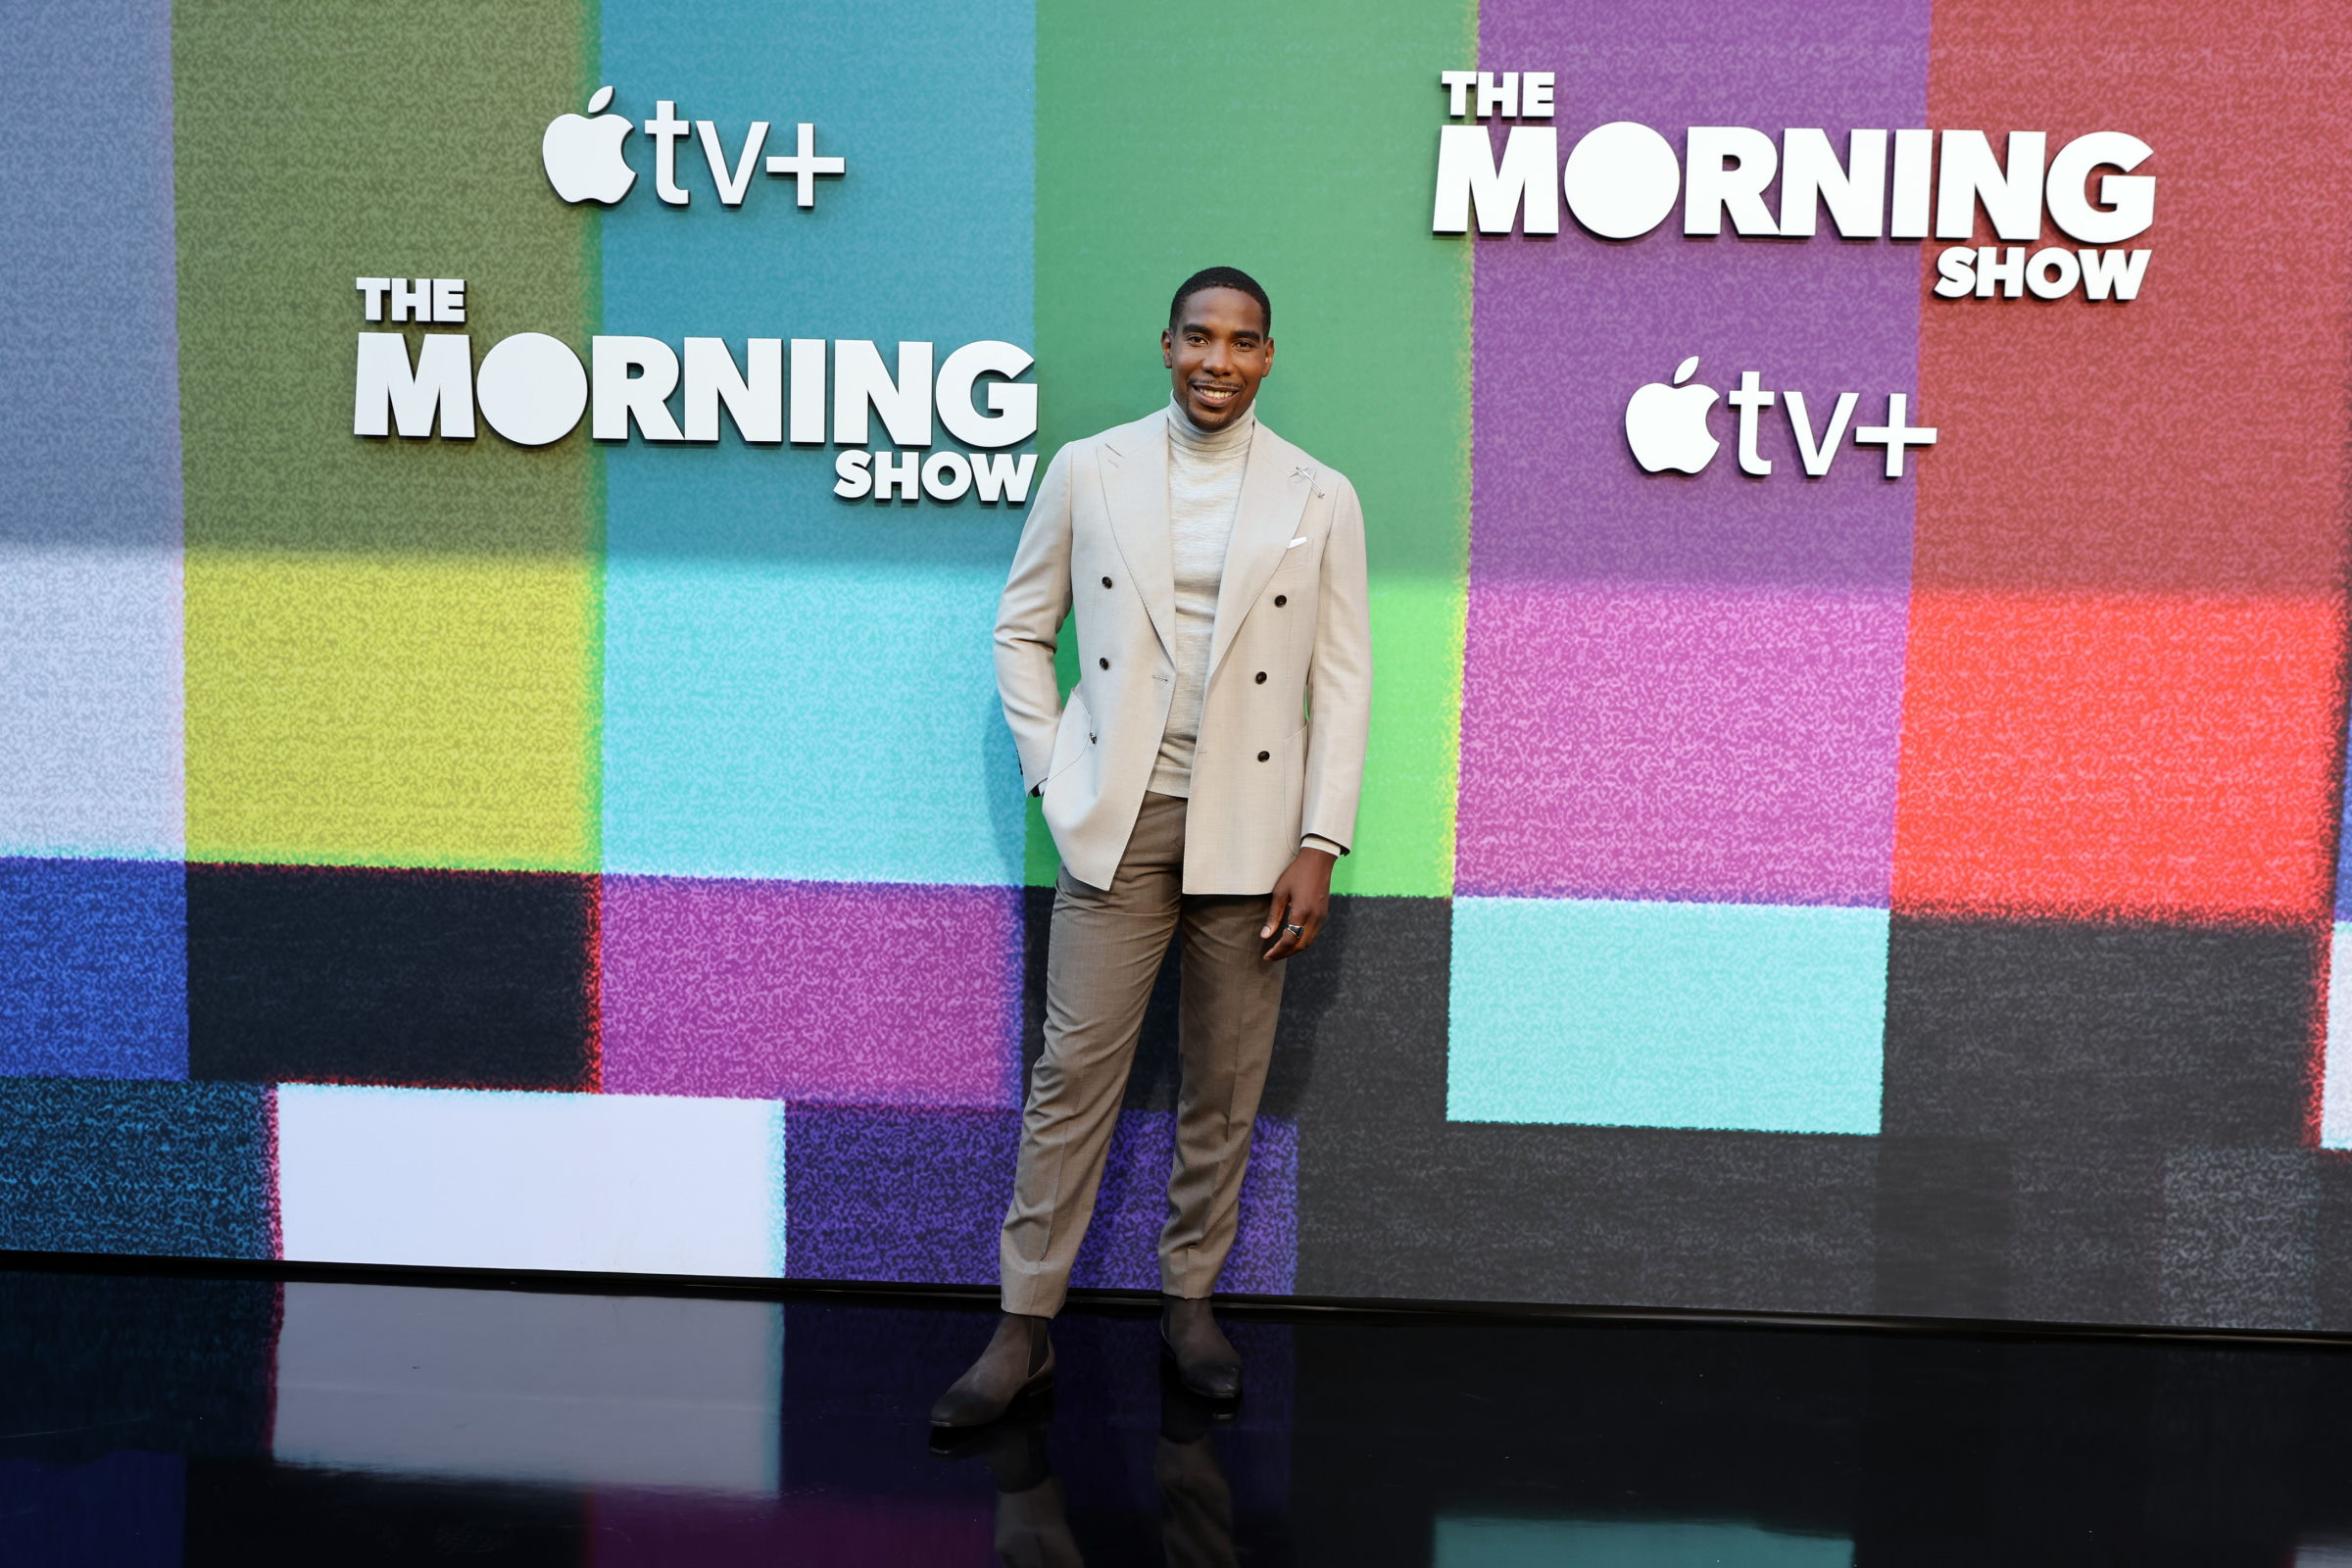 The Morning Show Season 2: Desean Terry On His Character Being In The Middle Of The COVID Crisis